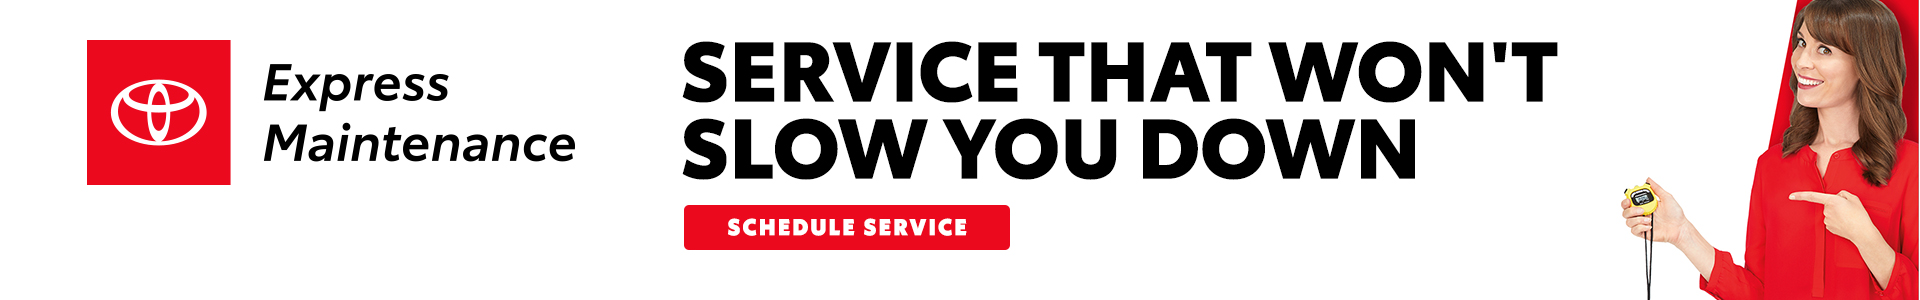 Express Maintenance - Service that won't slow you down - Schedule Service